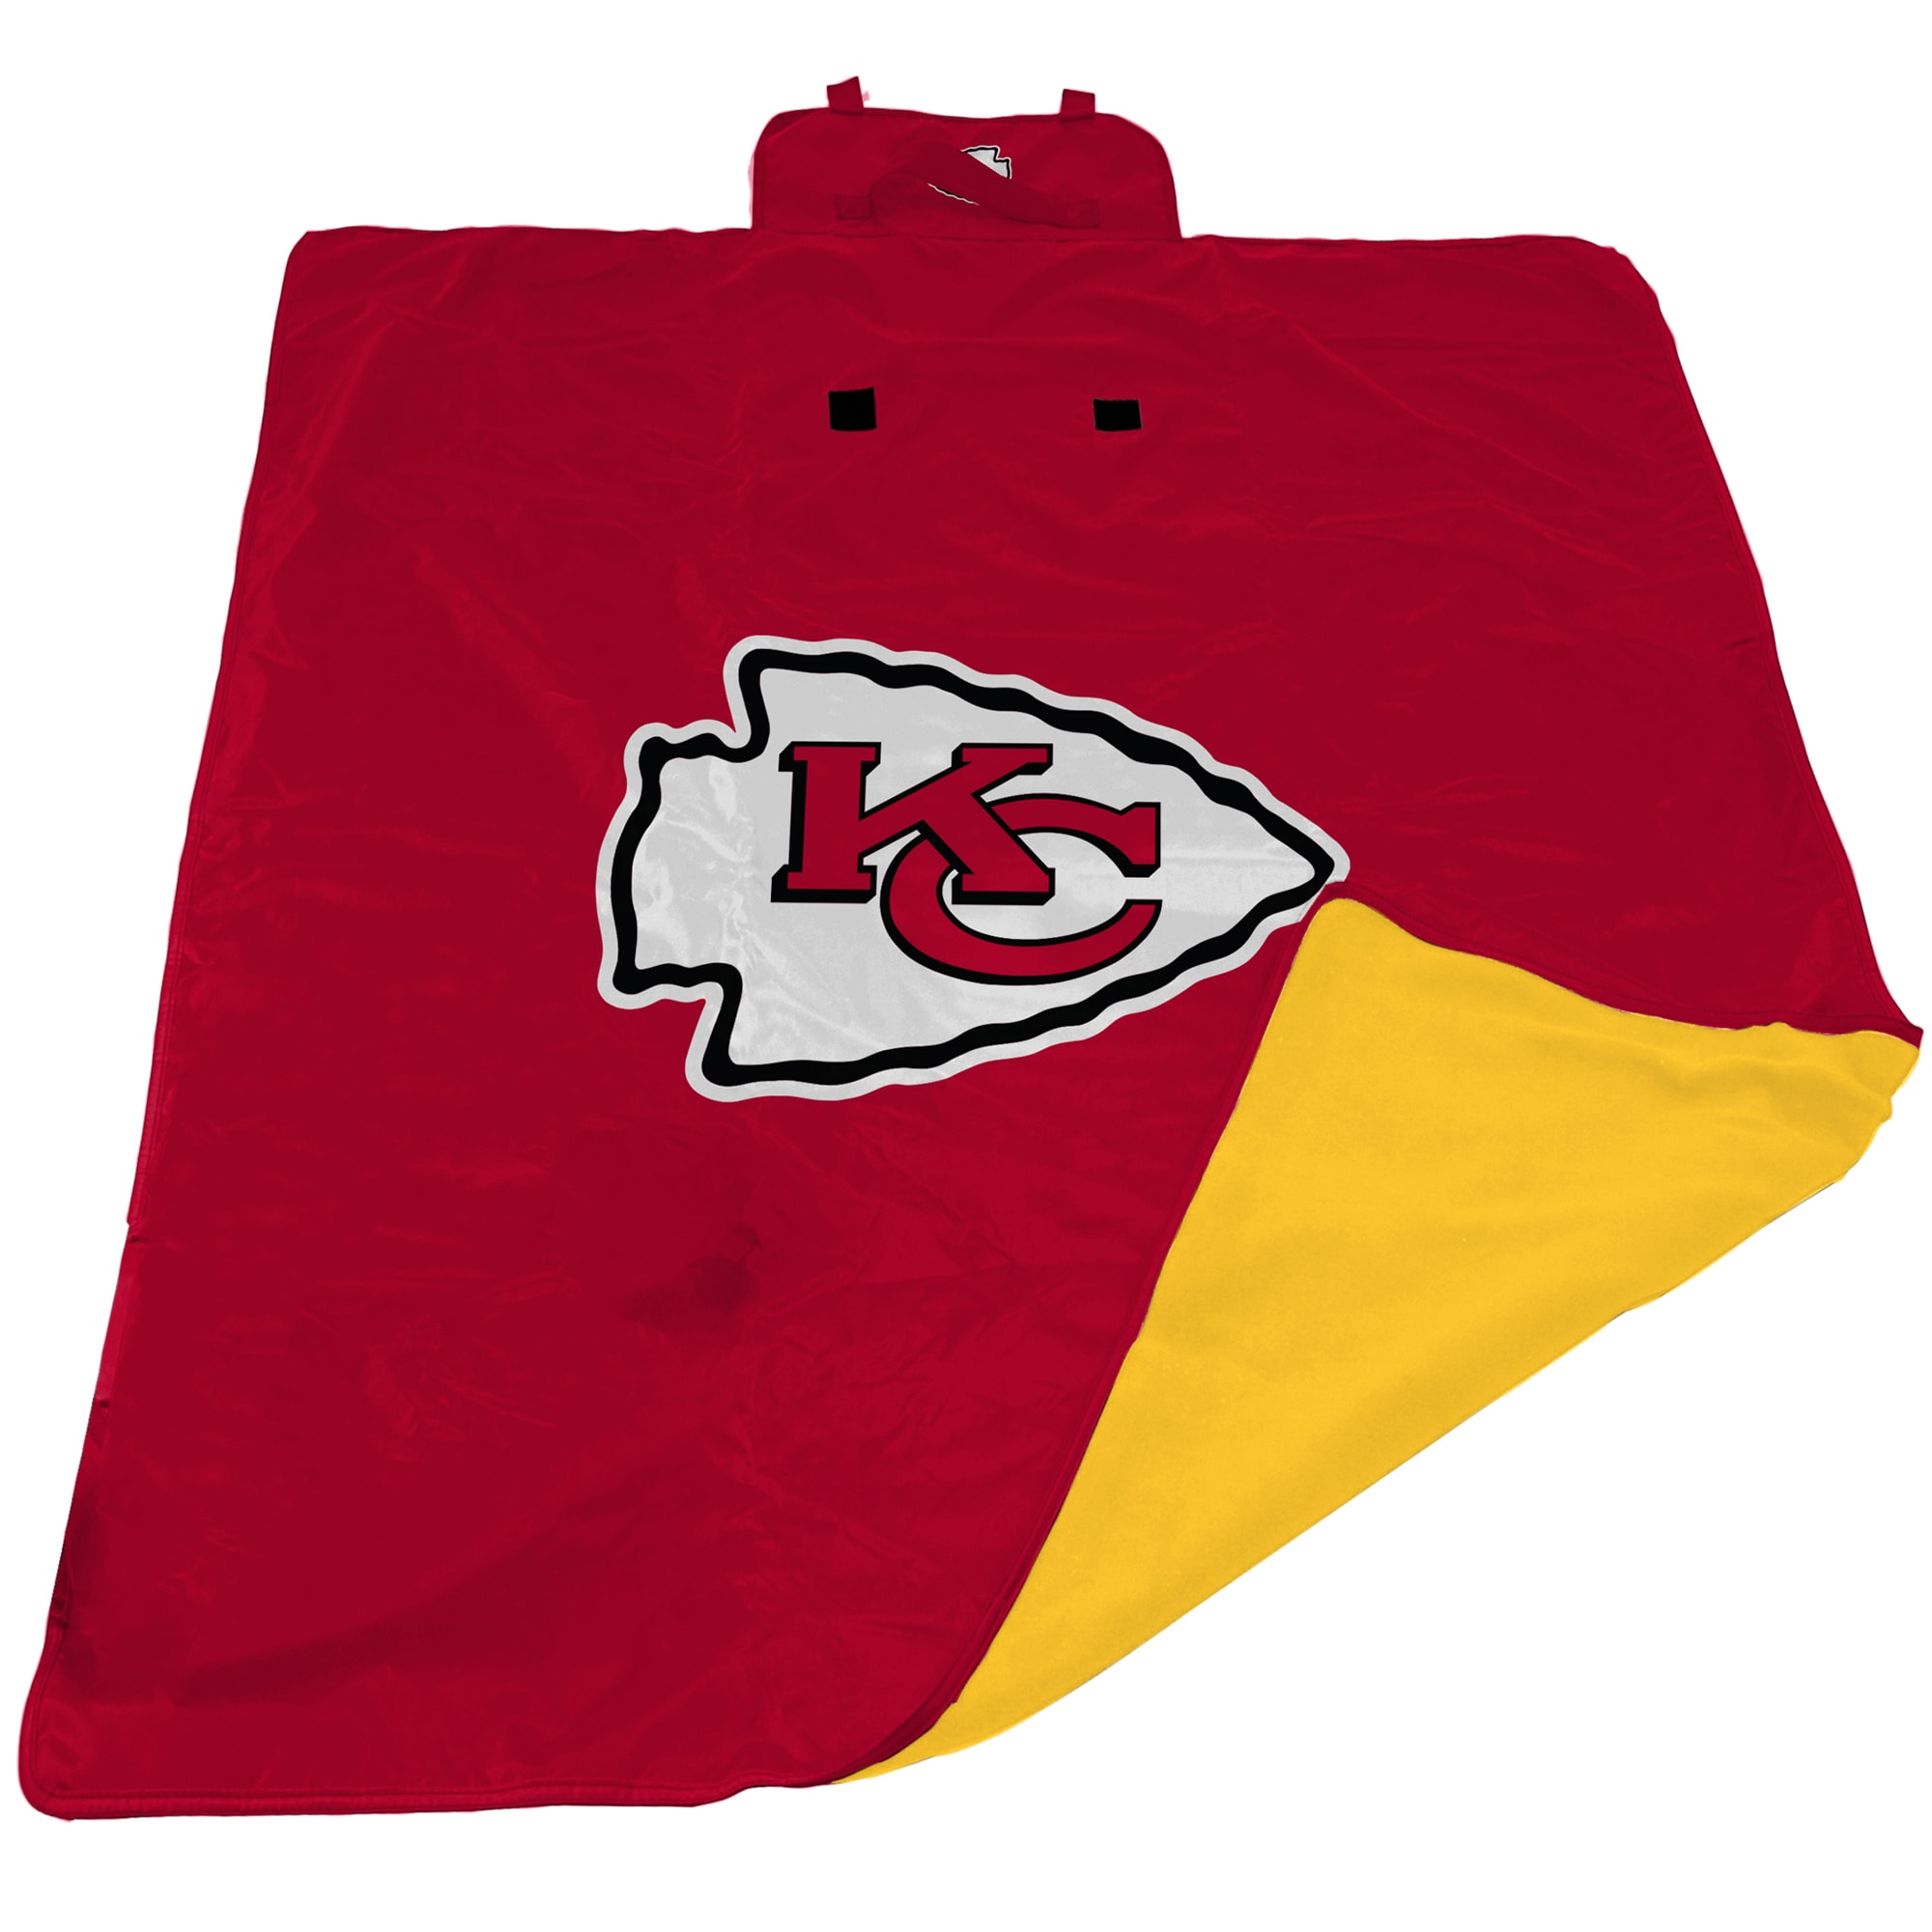 Kansas City Chiefs 60'' x 80'' All-Weather XL Outdoor Blanket - Red